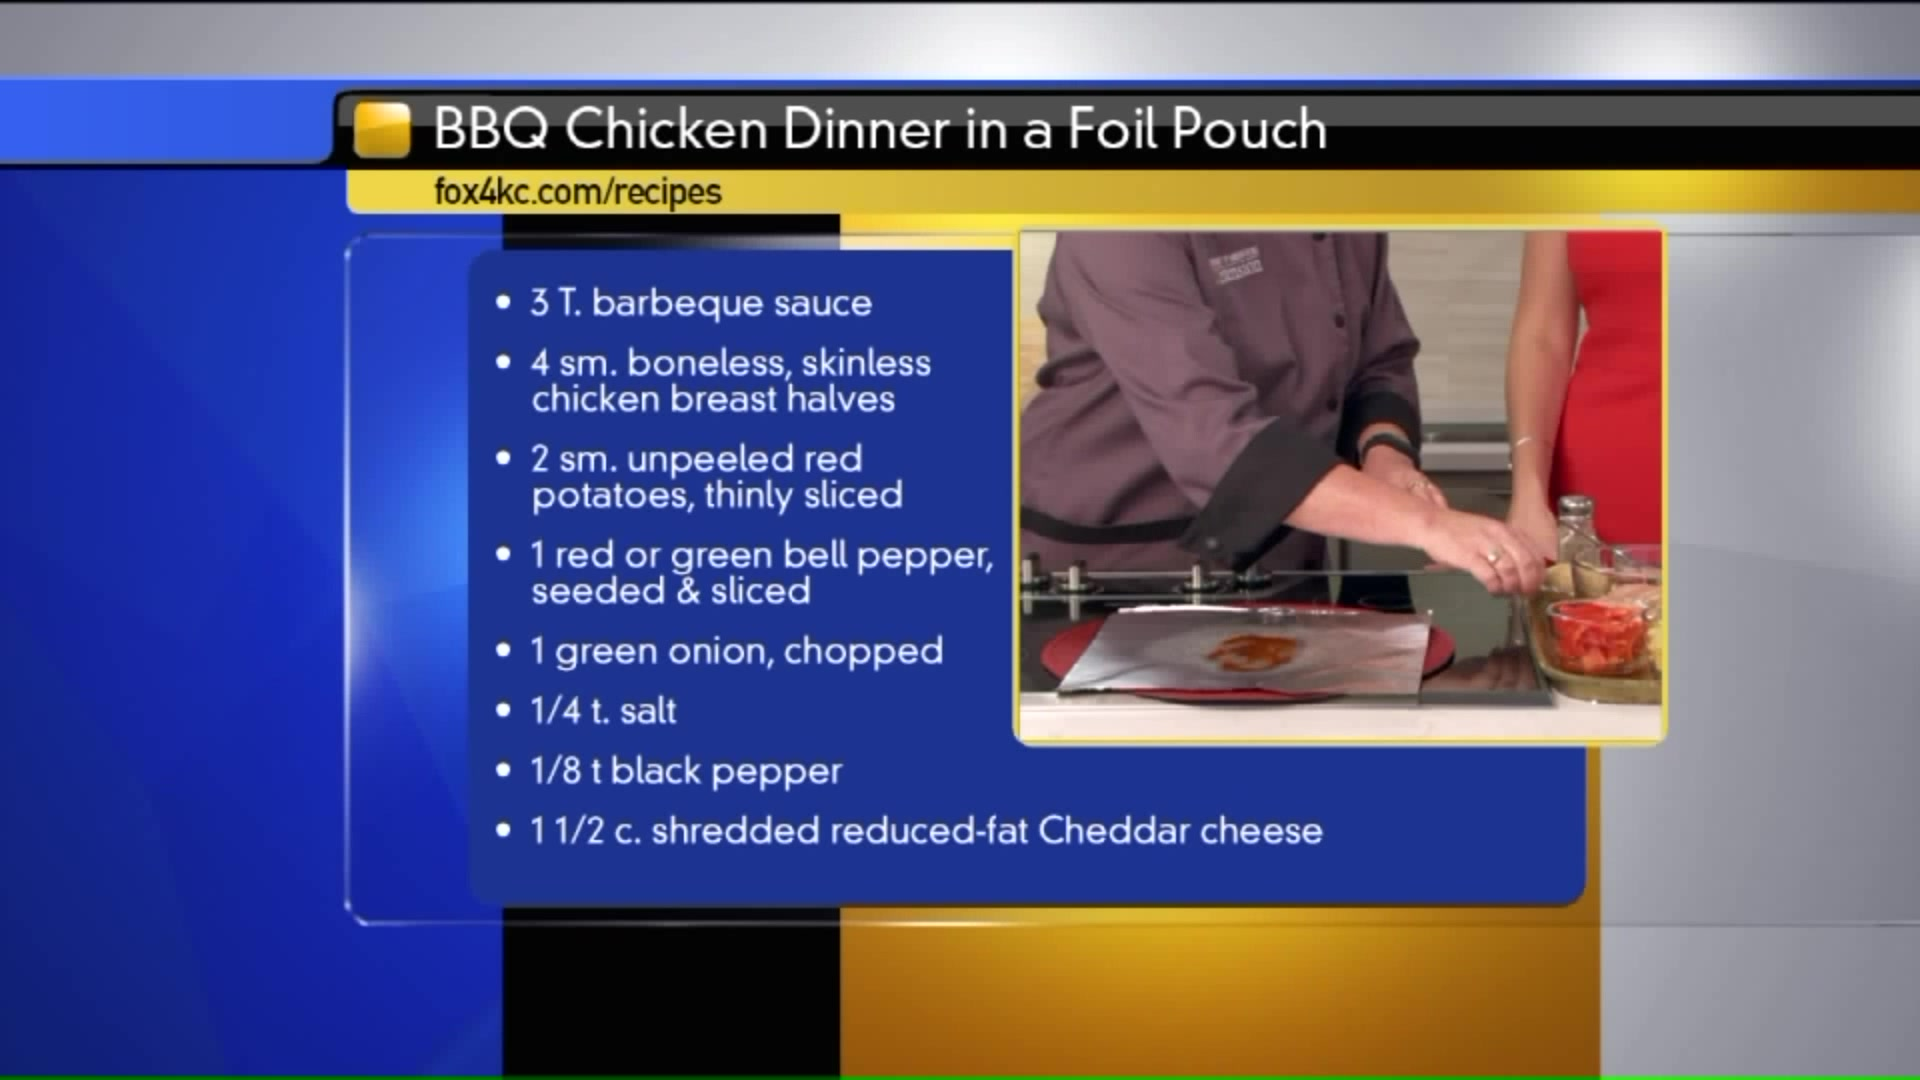 Healthy BBQ Chicken Recipe Perfect for Tailgating